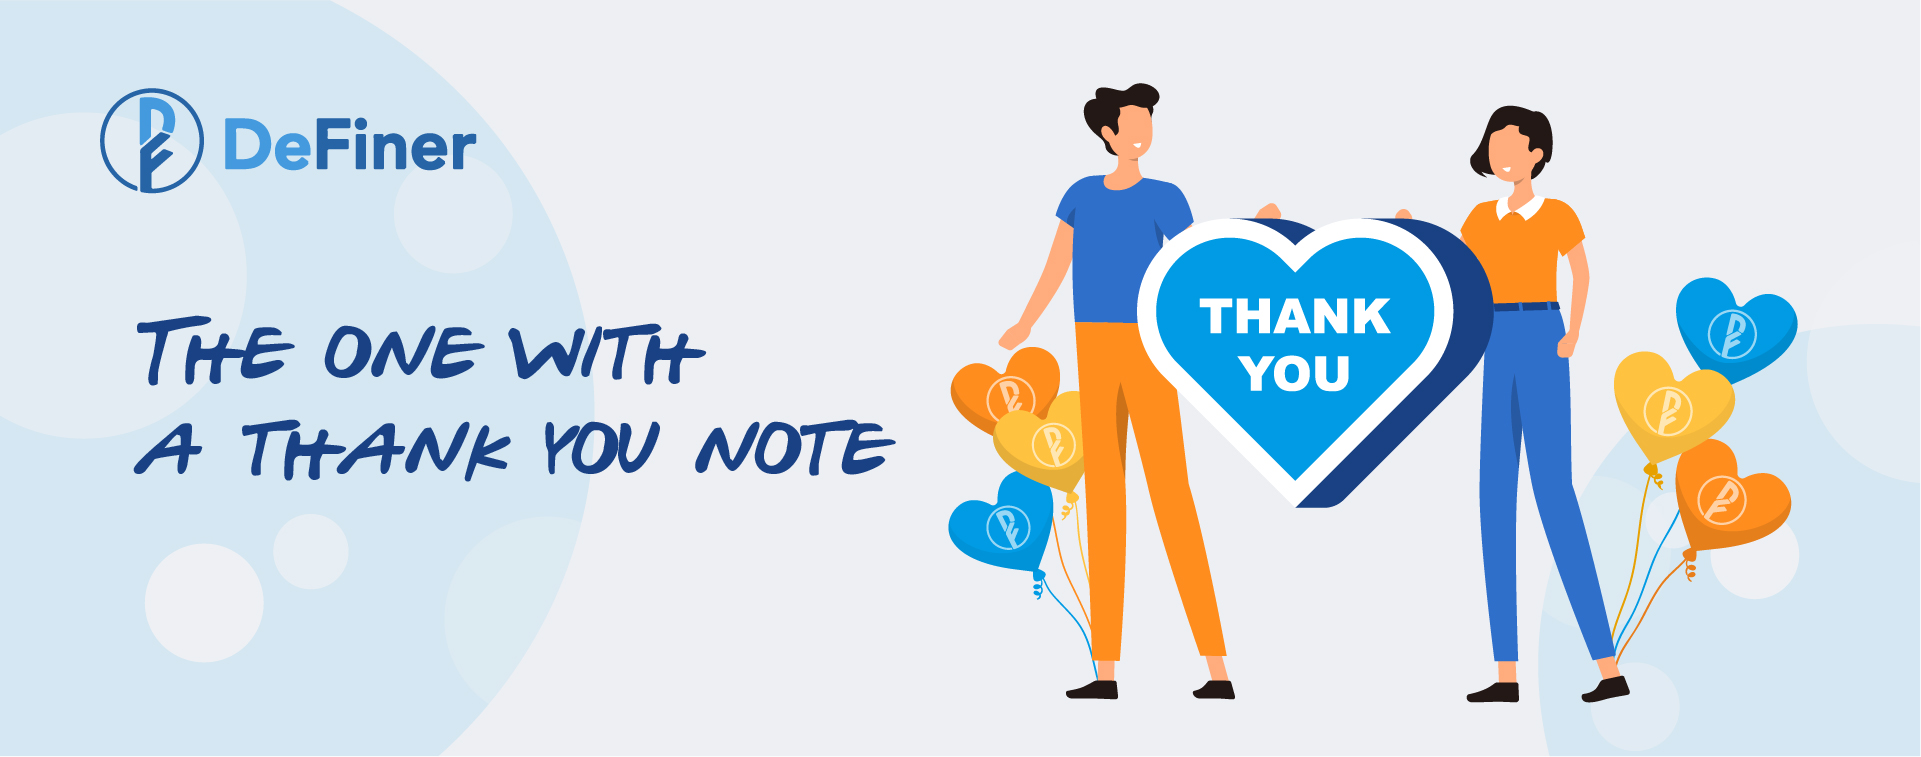 The one with_a thank you note_blog-jpg